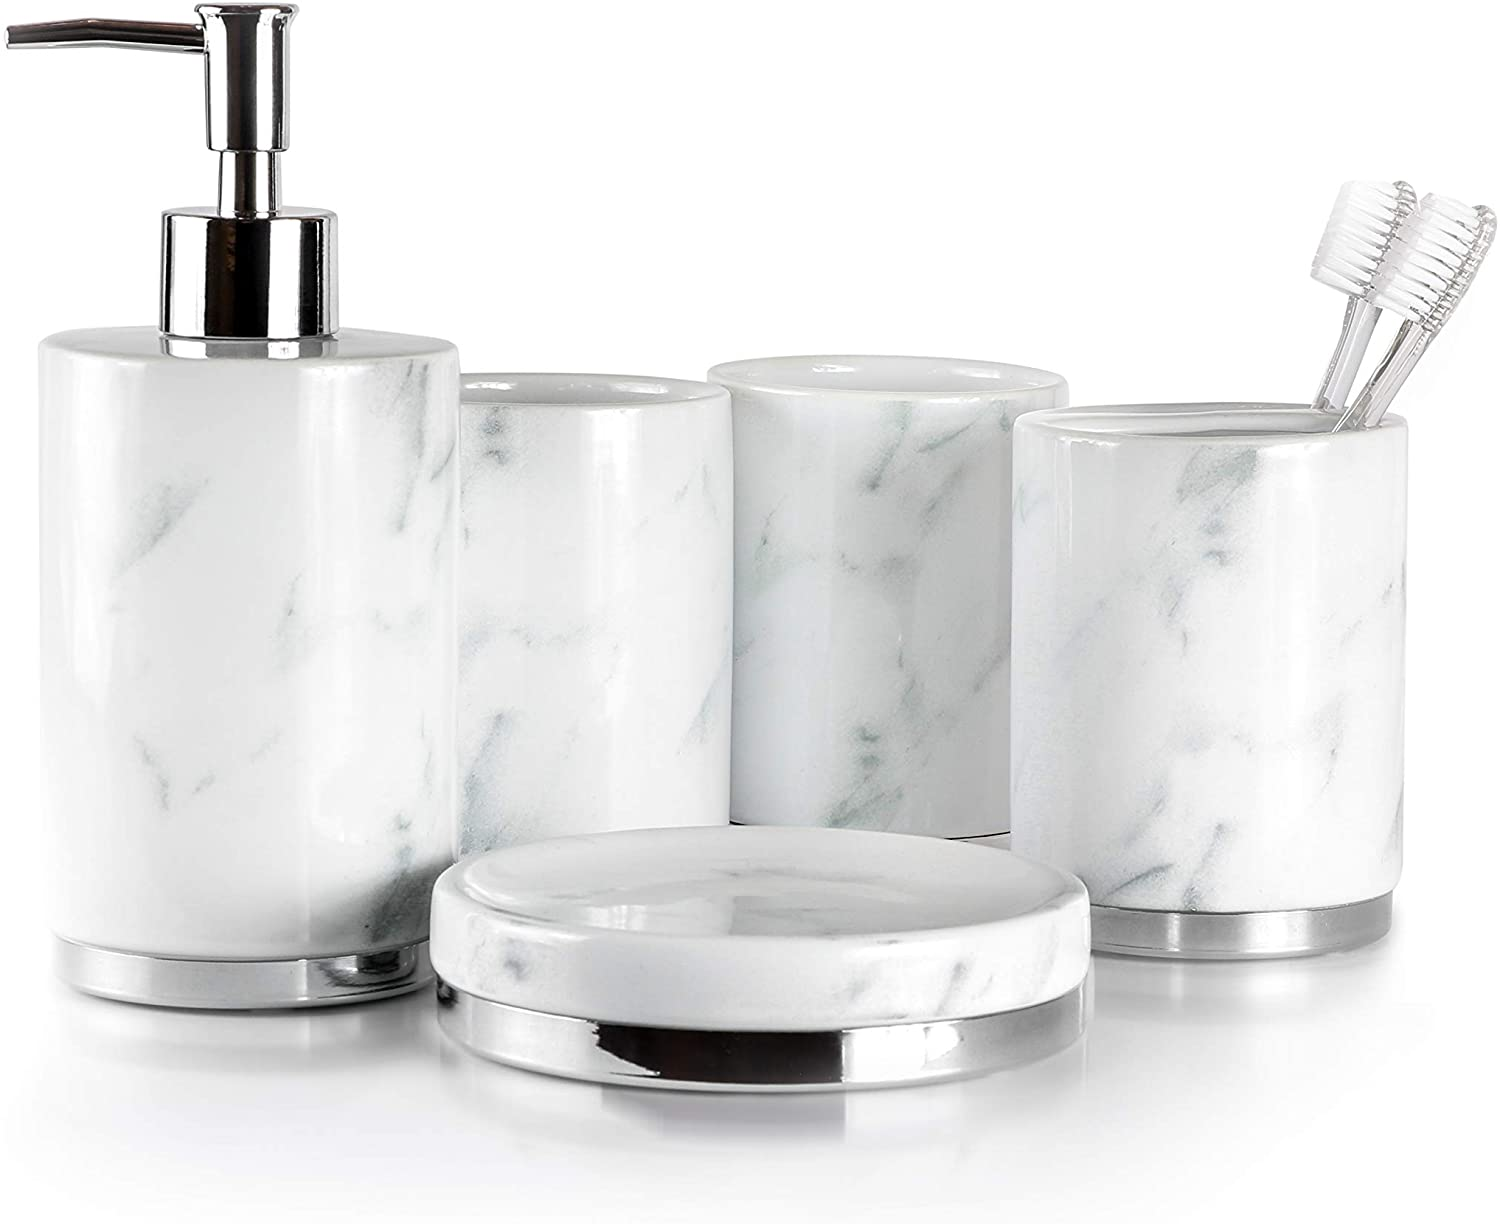 Willow&Ivory Bathroom Accessories Set  9 Piece, Ceramic Bath Set   Toothbrush Holder, Soap Dispenser, Soap Dish, 9 Tumblers  Marble Collection